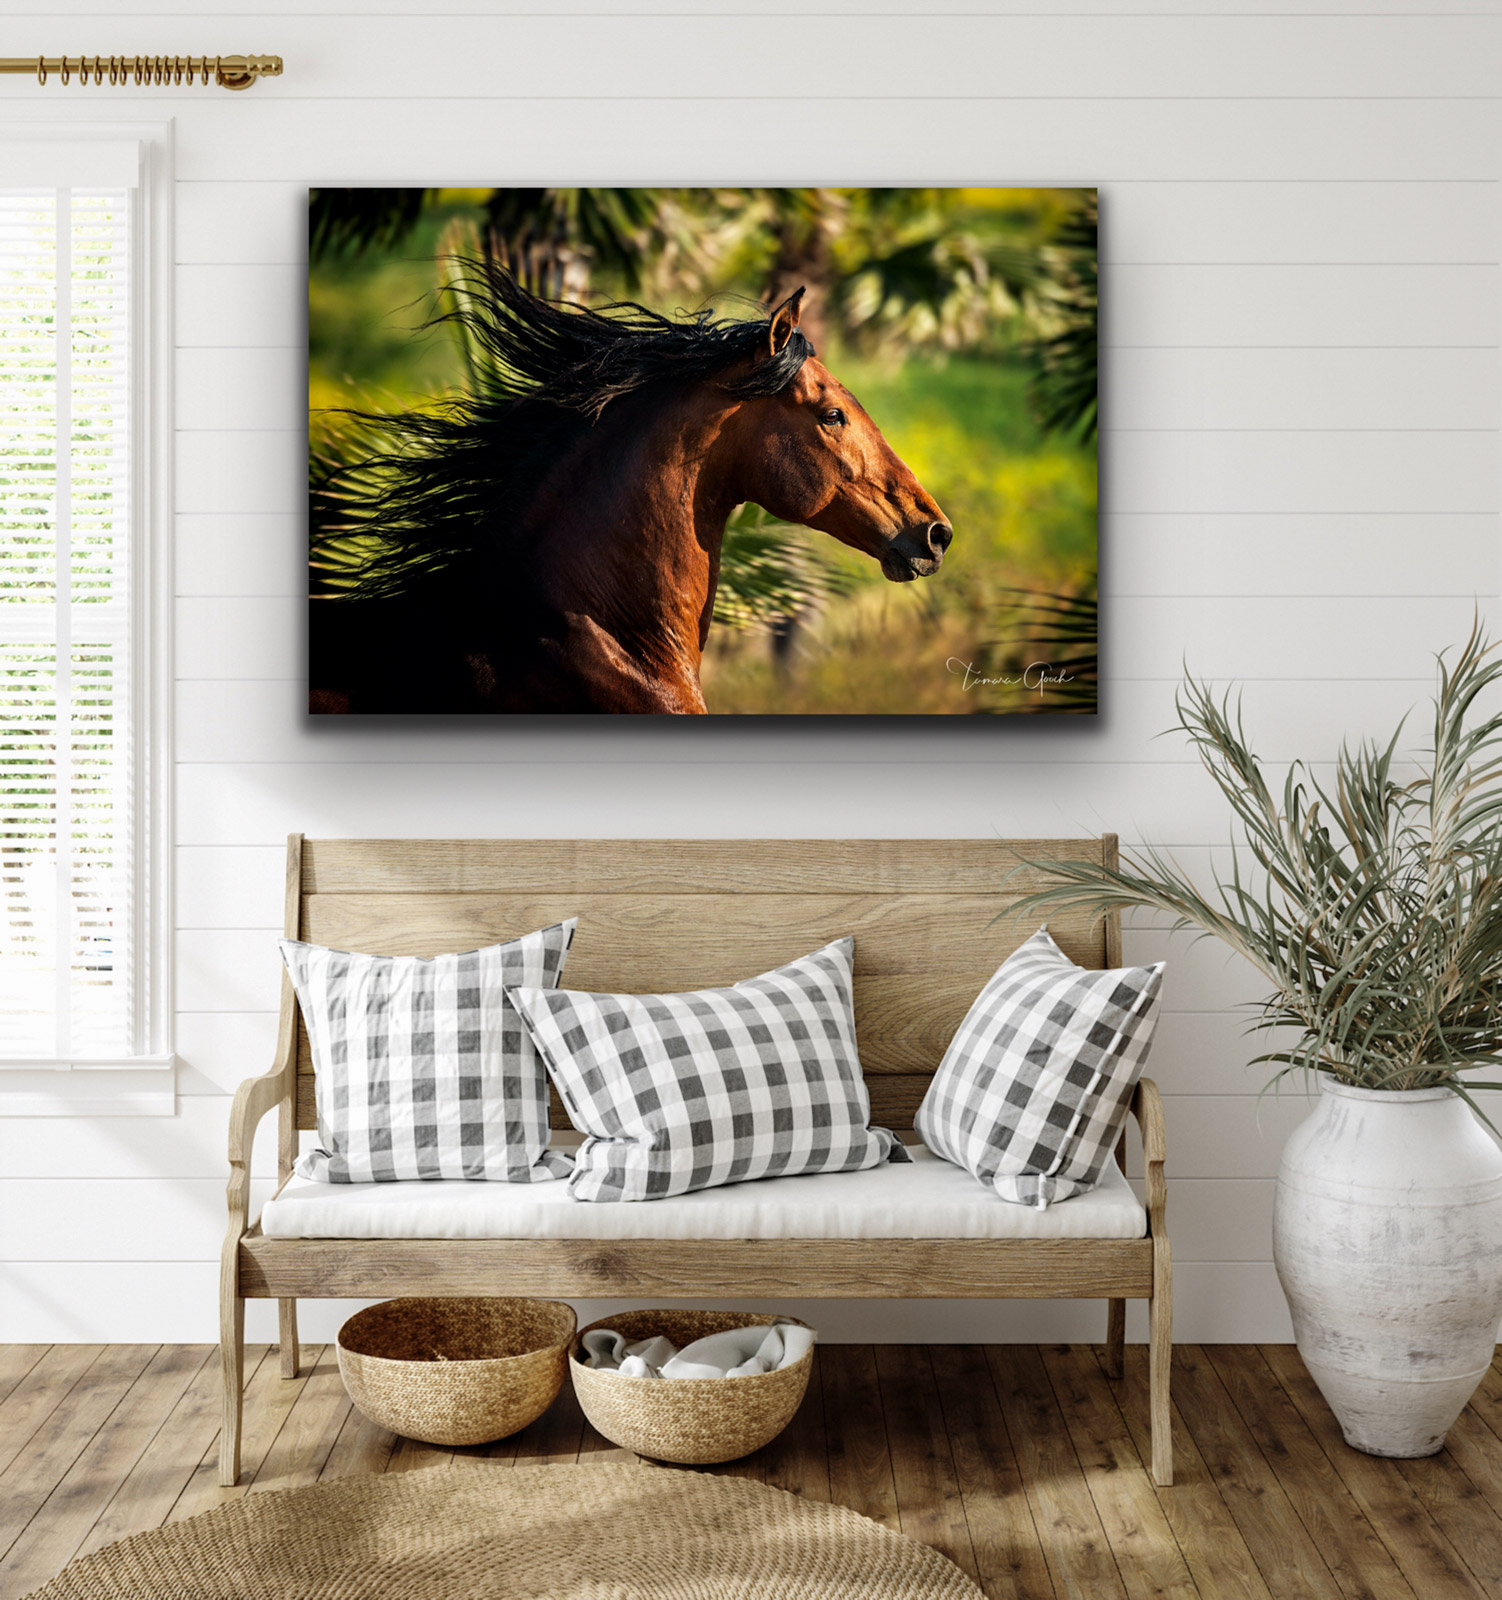 Horse Photography print on metal, aluminum, canvas or non-glare acrylic, framed or unframed of an Andalusian horse running through...